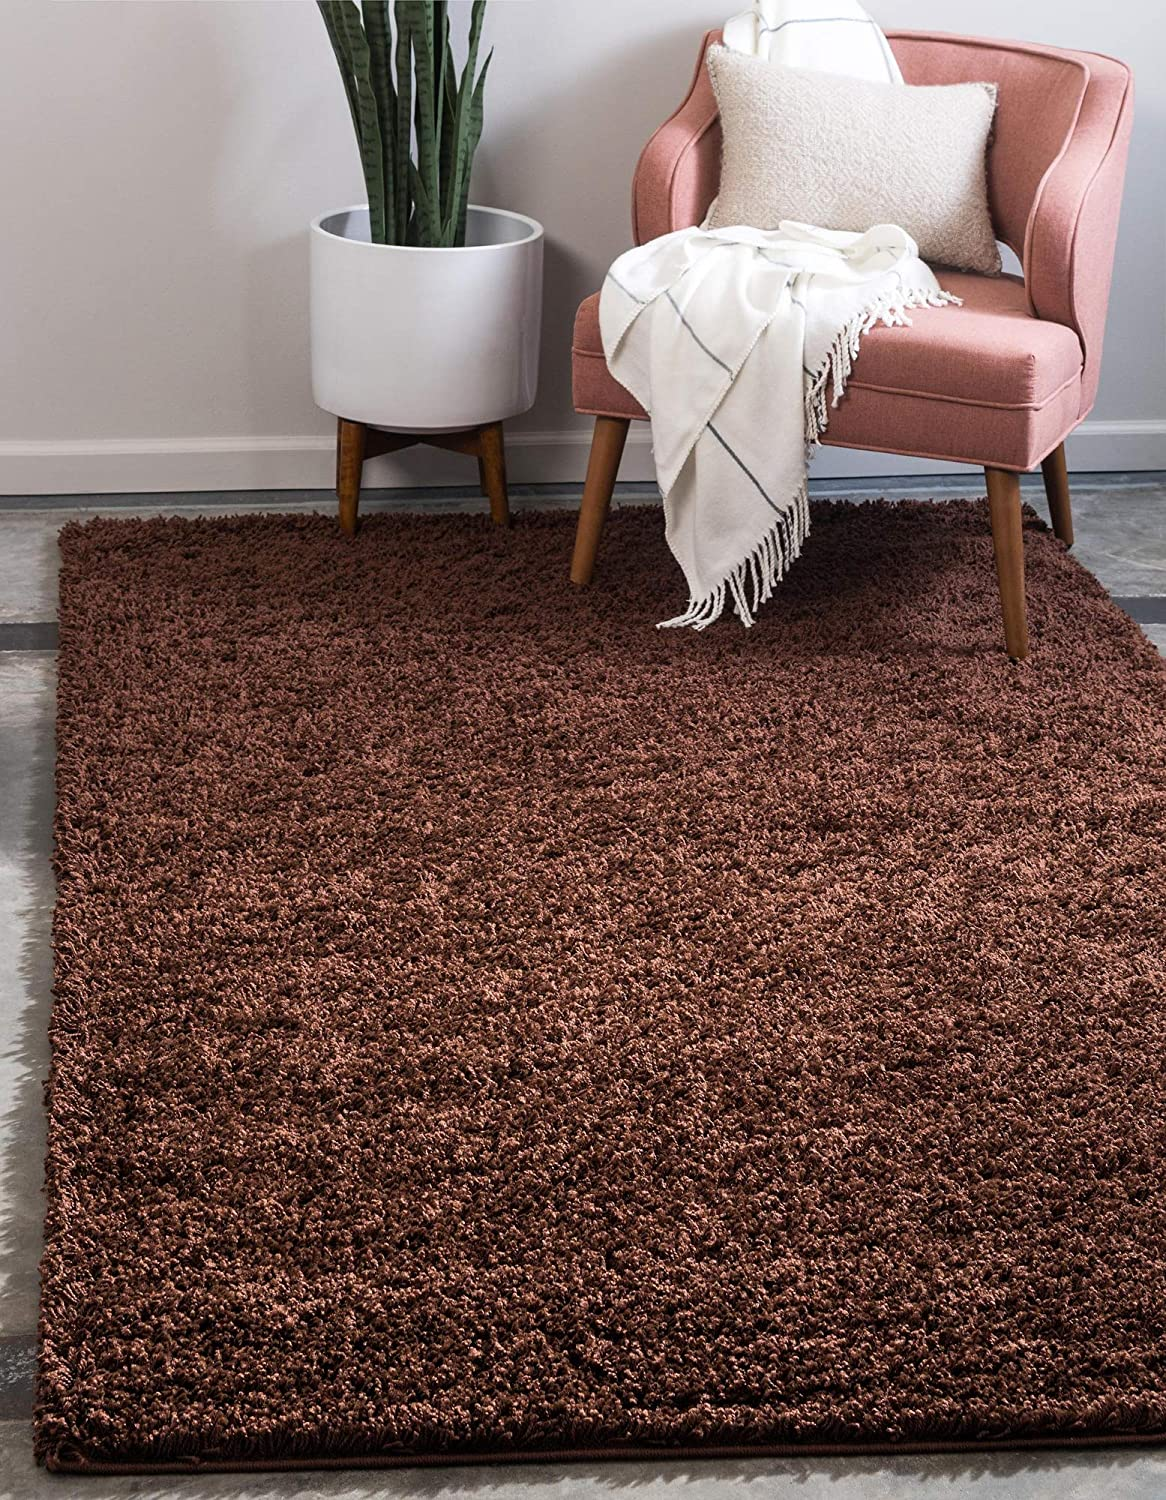 Unique Loom Solo Solid Shag Collection Modern Plush Chocolate Brown Area Rug (7' 0 x 10' 0)